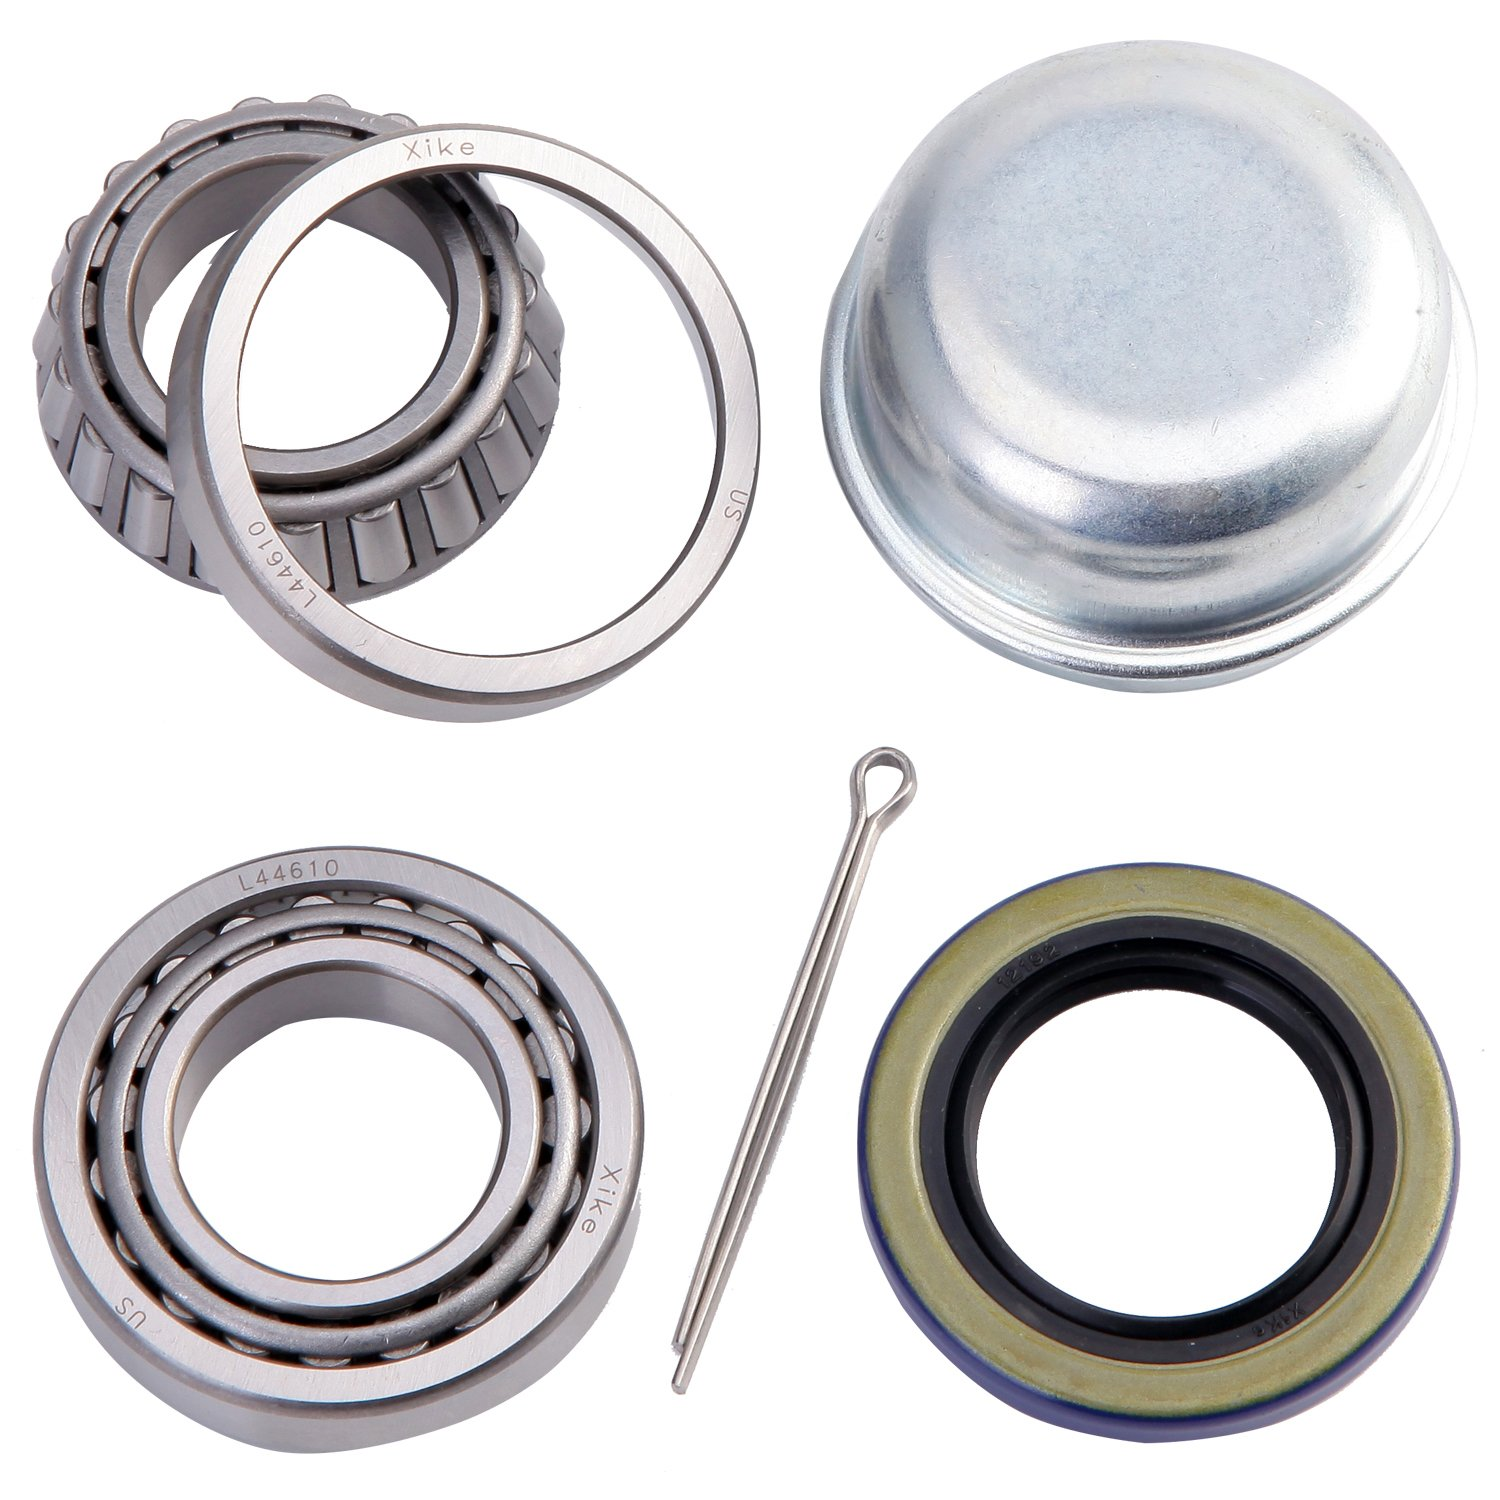 XiKe 1 Set Trailer Axle Hub Bearings Wheel Kit for Spindle 1.000'' or 1 Inch, Rotary Quiet High Speed and Durable. L44643/L44610, 12192TB Seal OD 1.980'', Dust Cover and Cotter Pin.